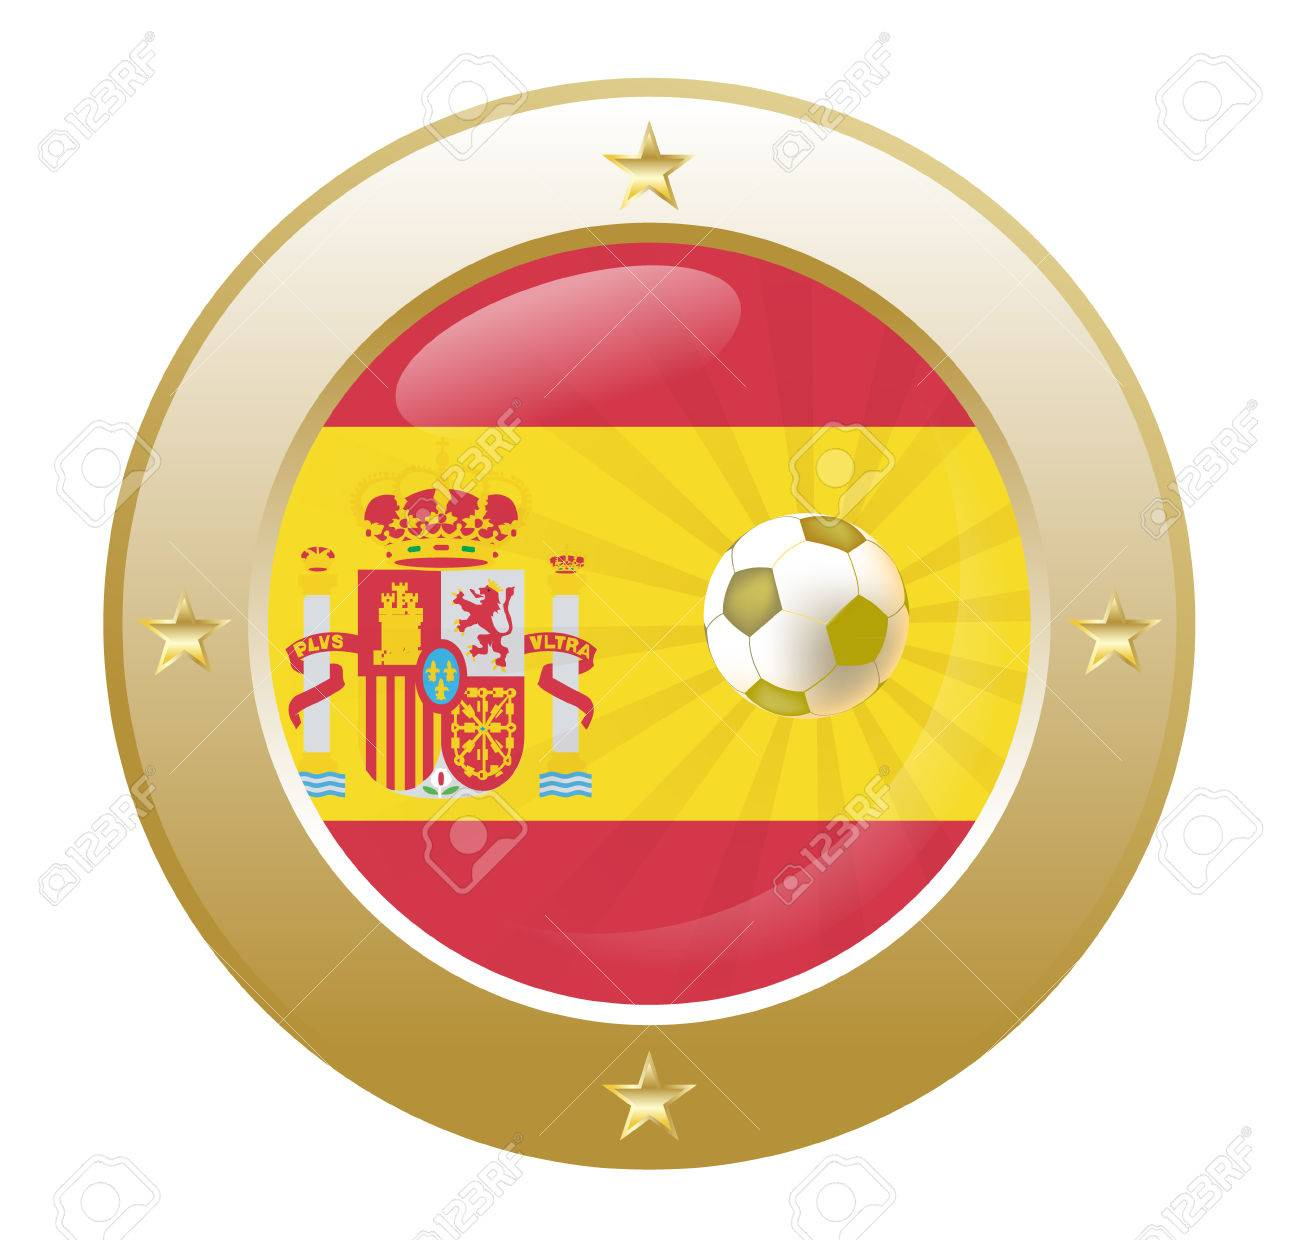 national flag of spain in circular shape with additional details Stock Vector - 7347337